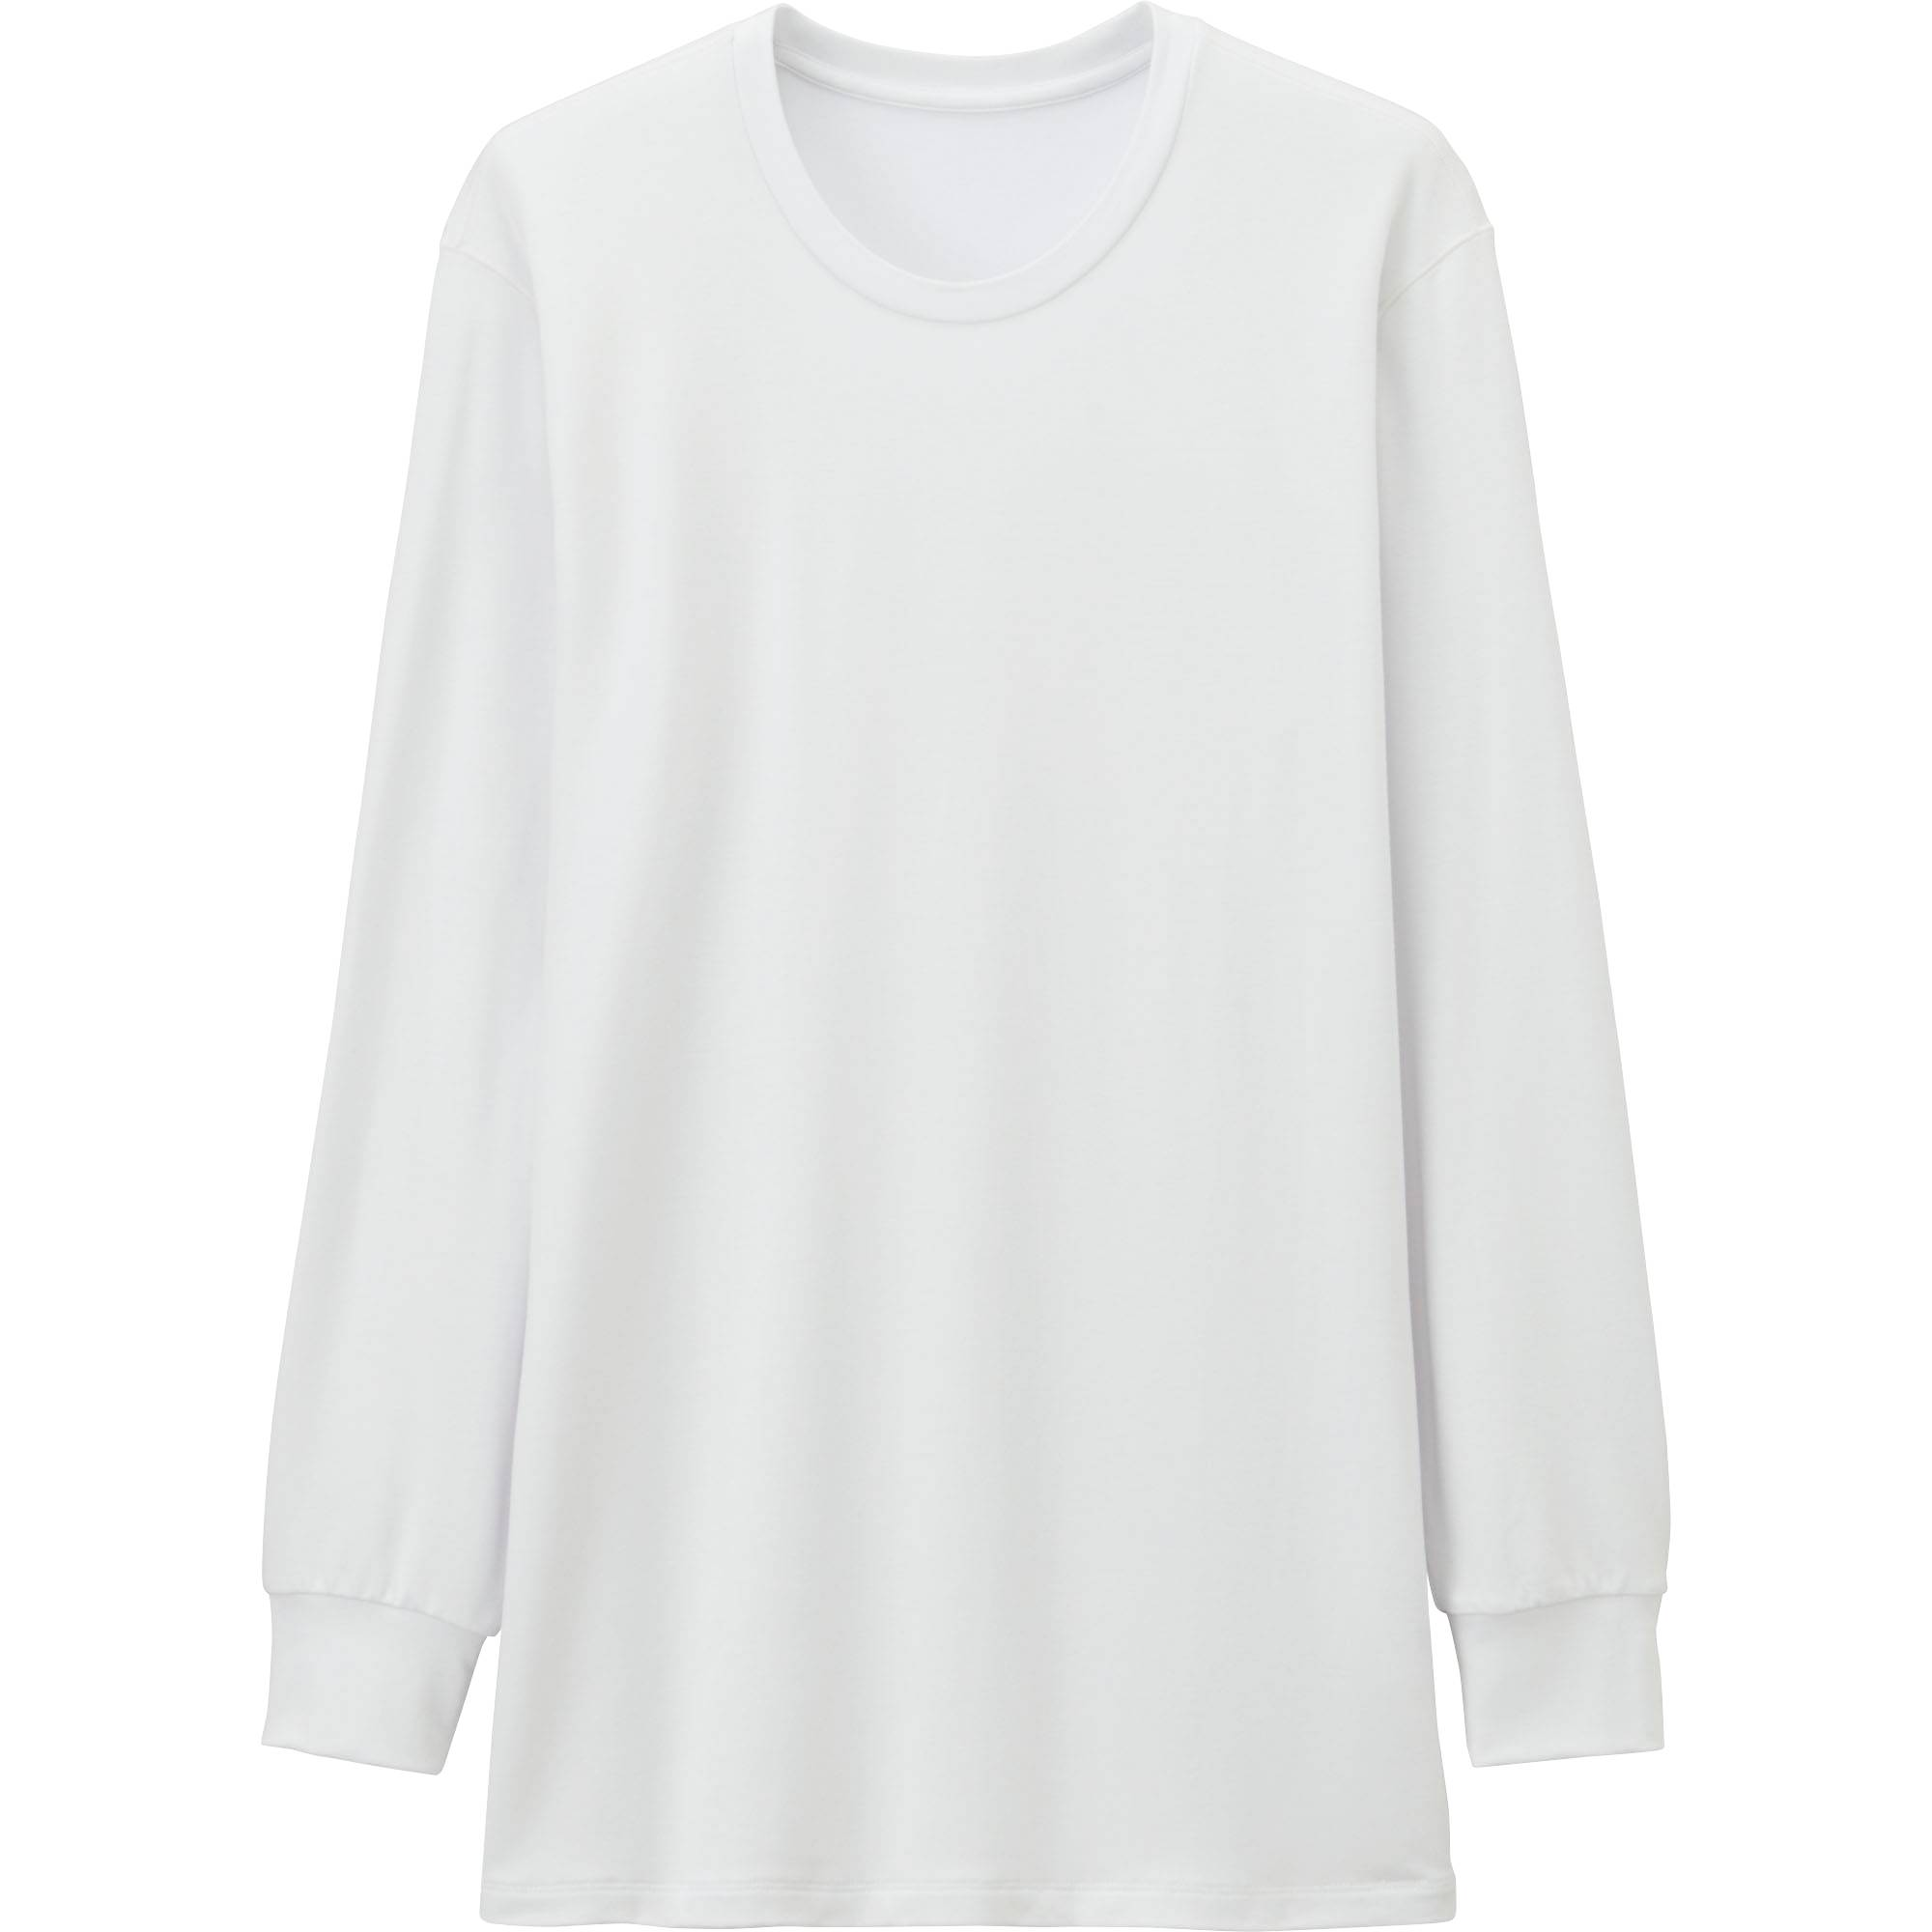 Men HEATTECH Long Sleeve Extra Warm T-Shirt | UNIQLO US